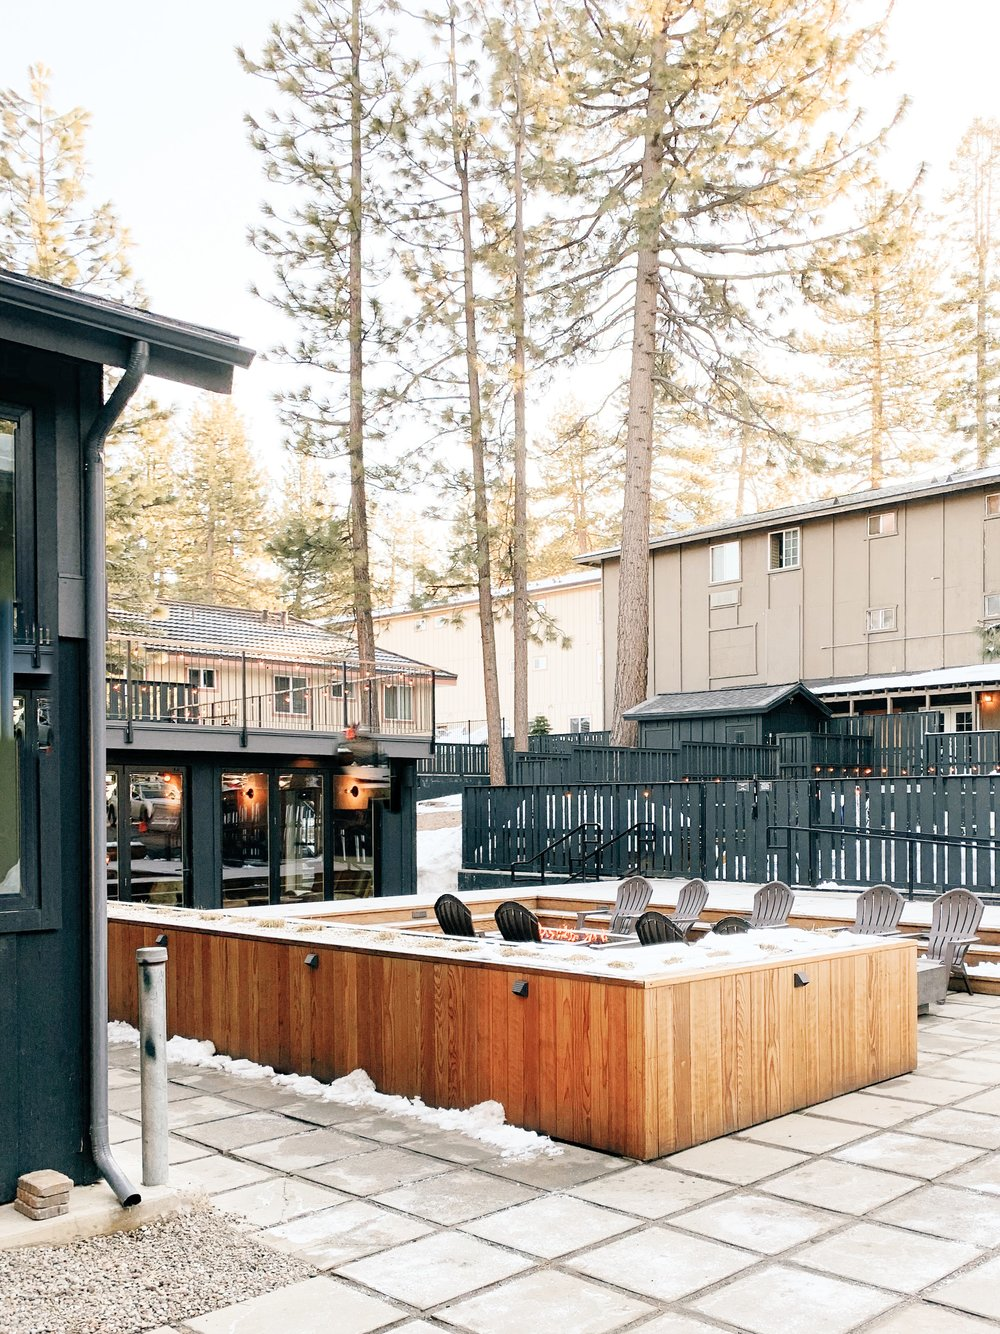 Coachman Hotel in South Lake Tahoe - Heather Selzer - Northern California Wedding Photographer based in Chico, CA